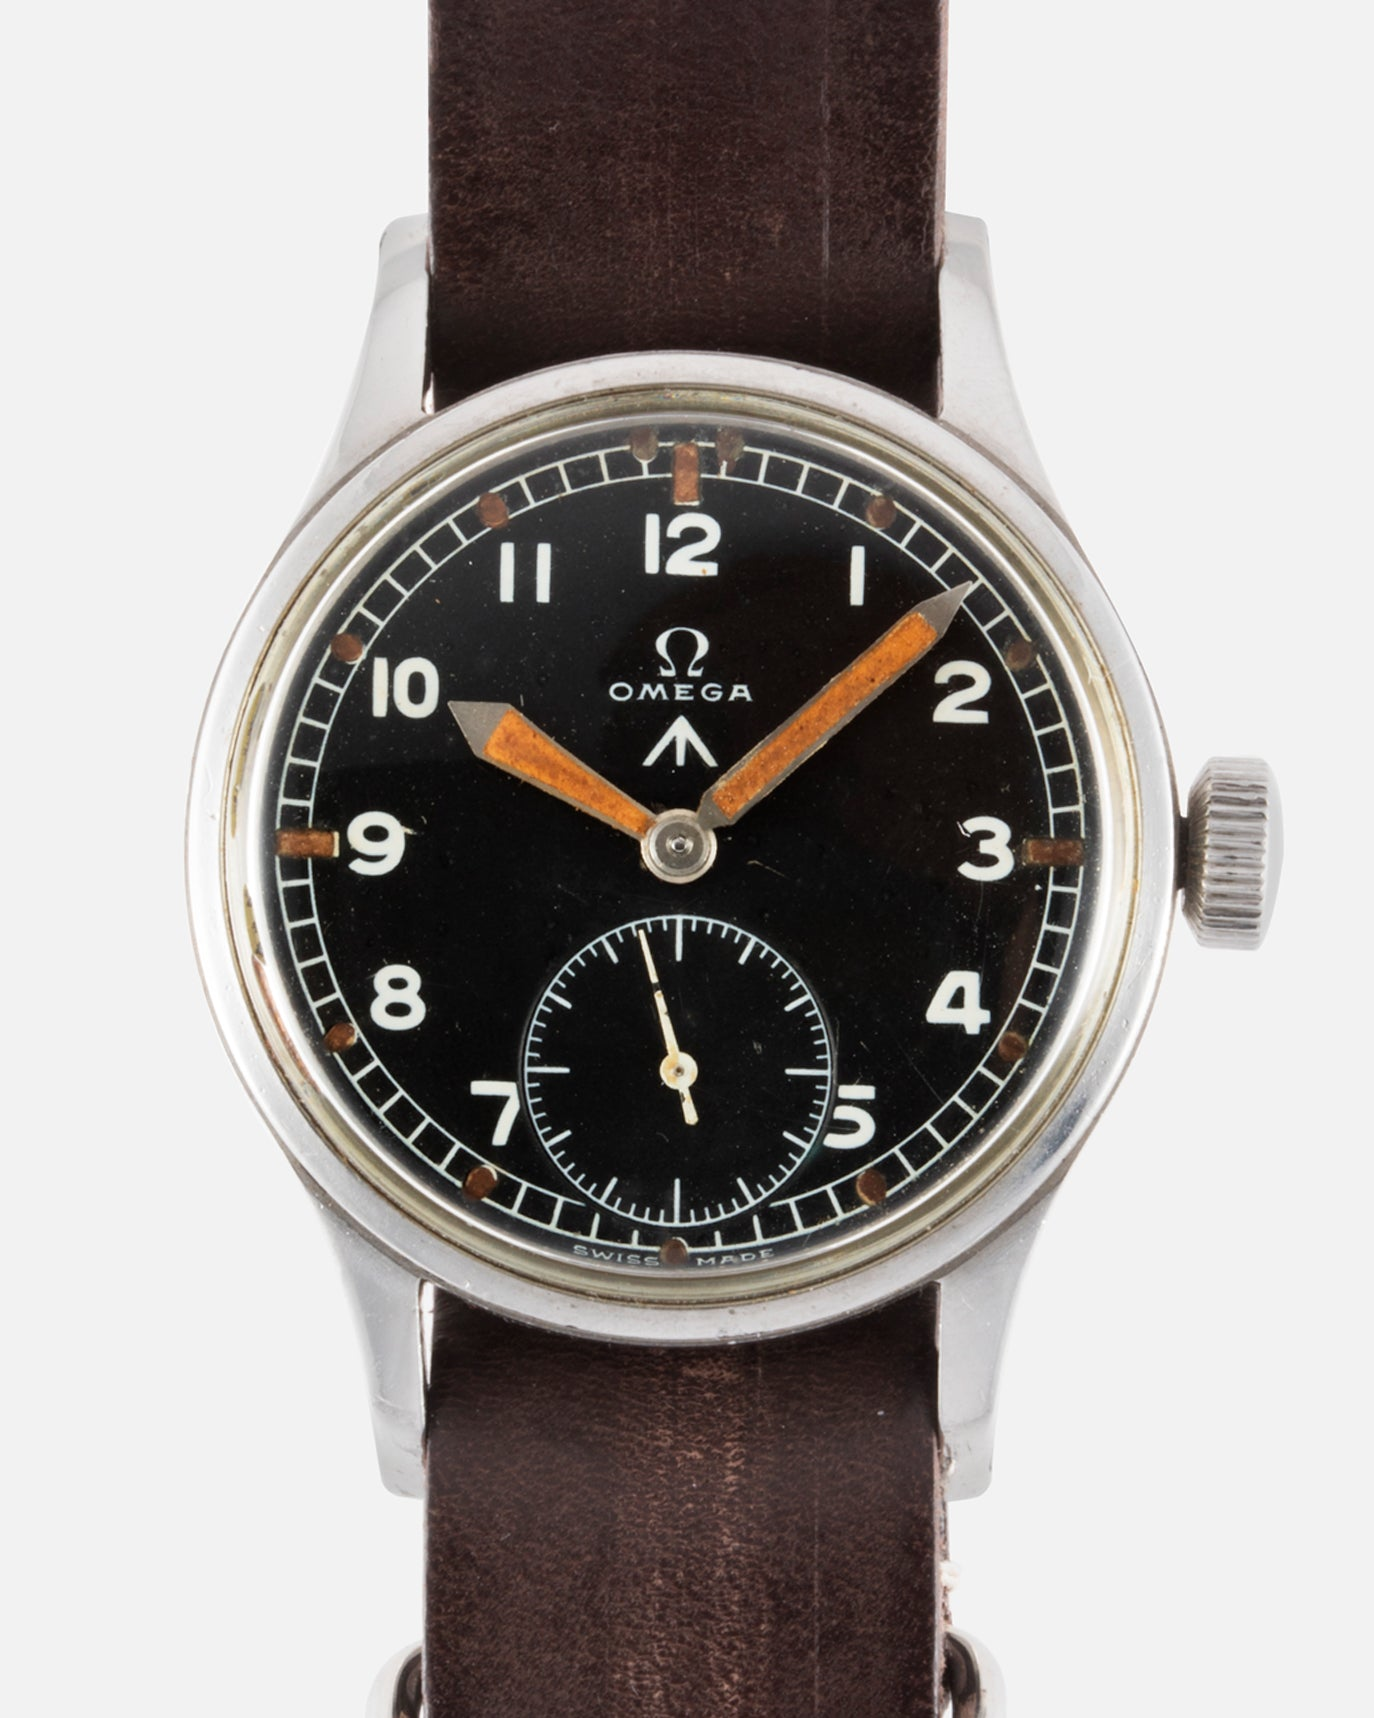 Omega W.W.W. Dirty Dozen